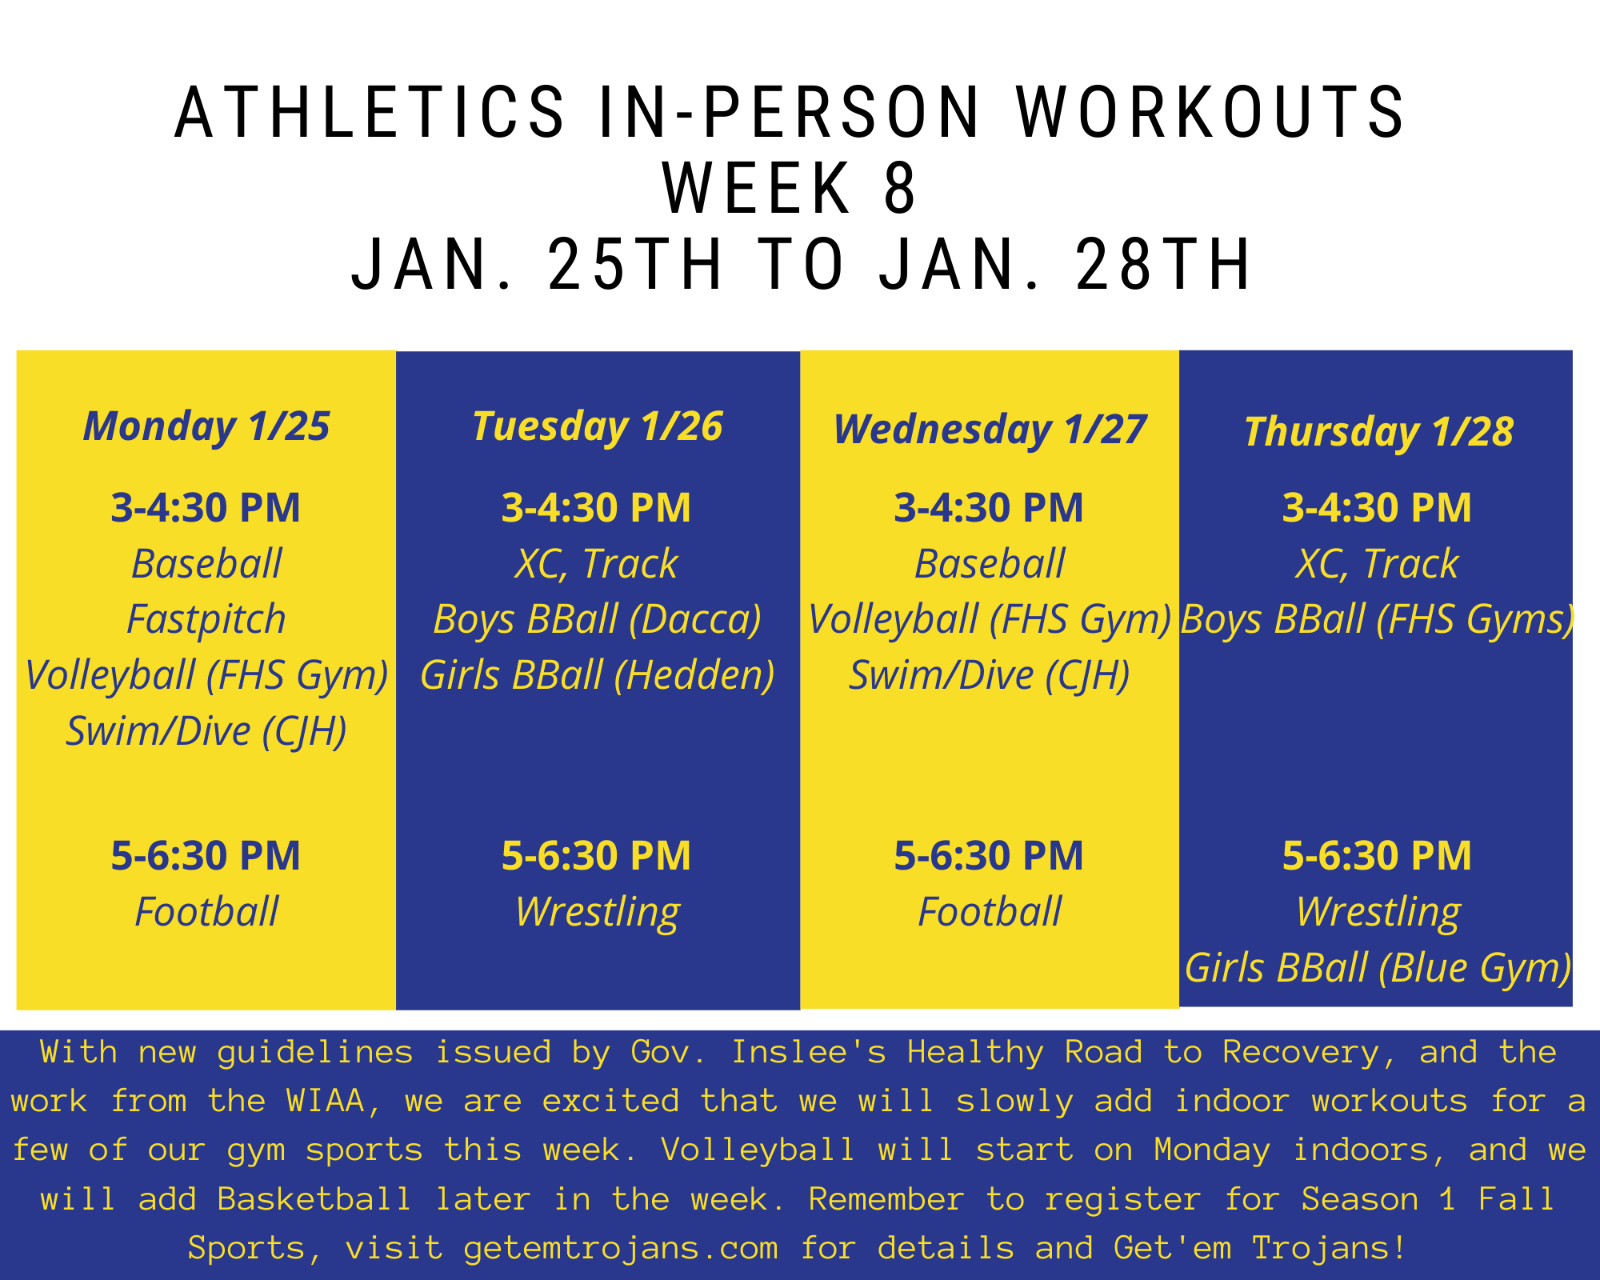 Week 8 In-person Workouts!